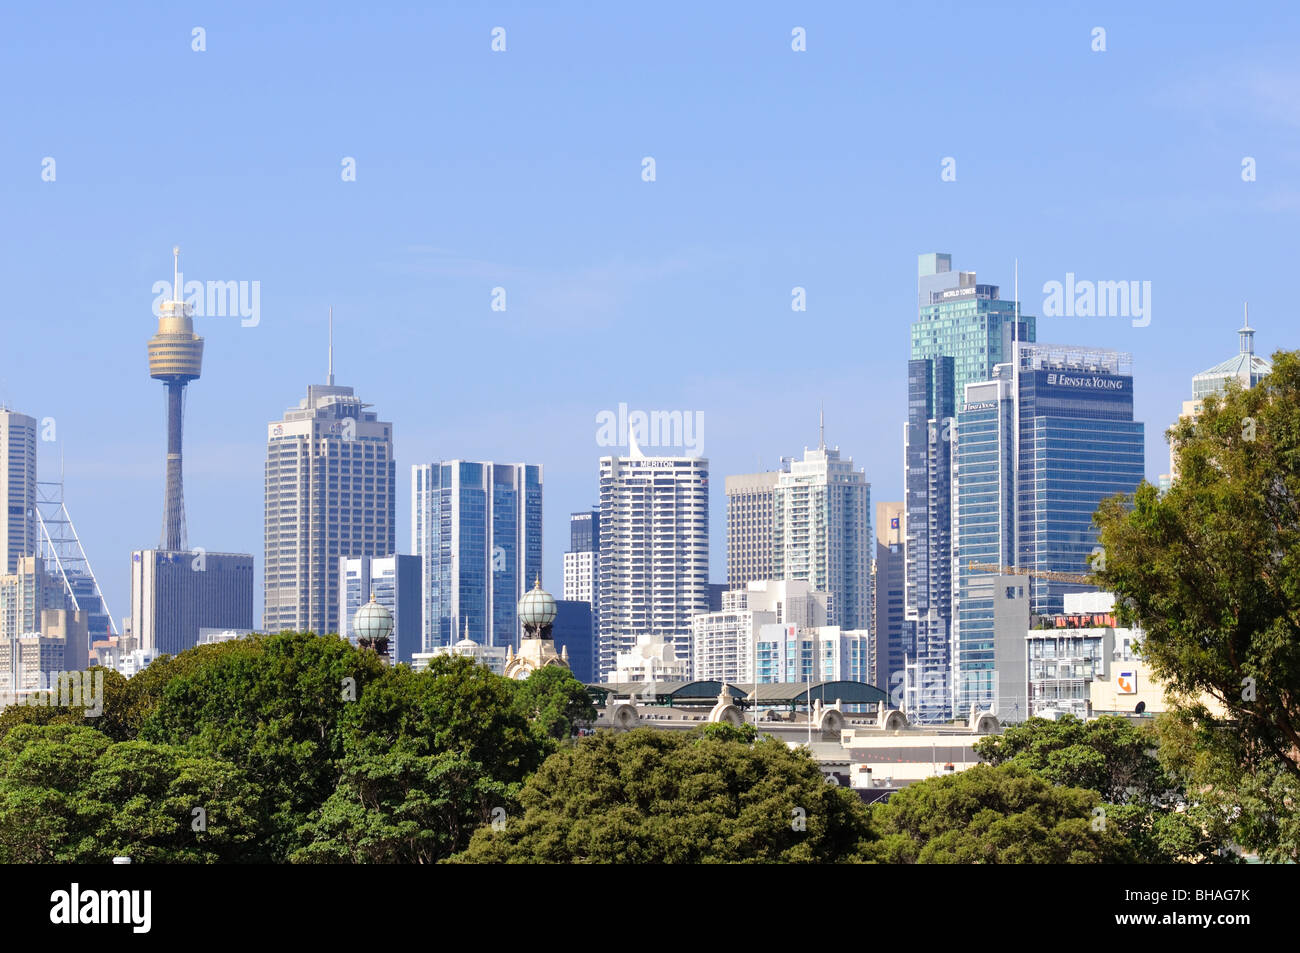 Famous city skyline, with modern skyscrapers, under a blue summer sky. Stock Photo